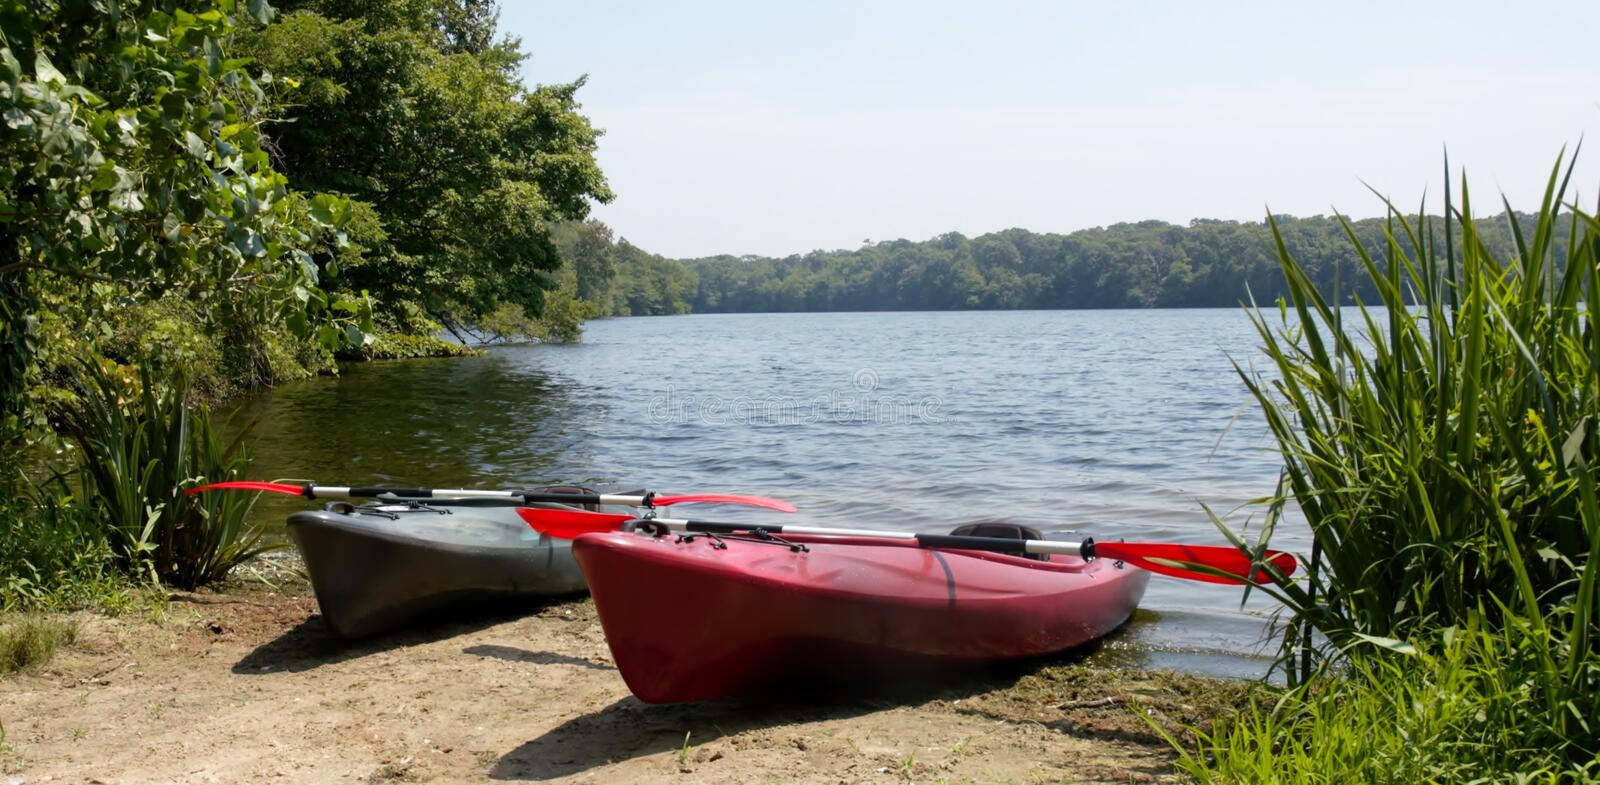 Long Island New York couple of kayaks. Couple of kayaks on lake ready for trip ,weather is great and nature around quit and beautiful royalty free stock photos